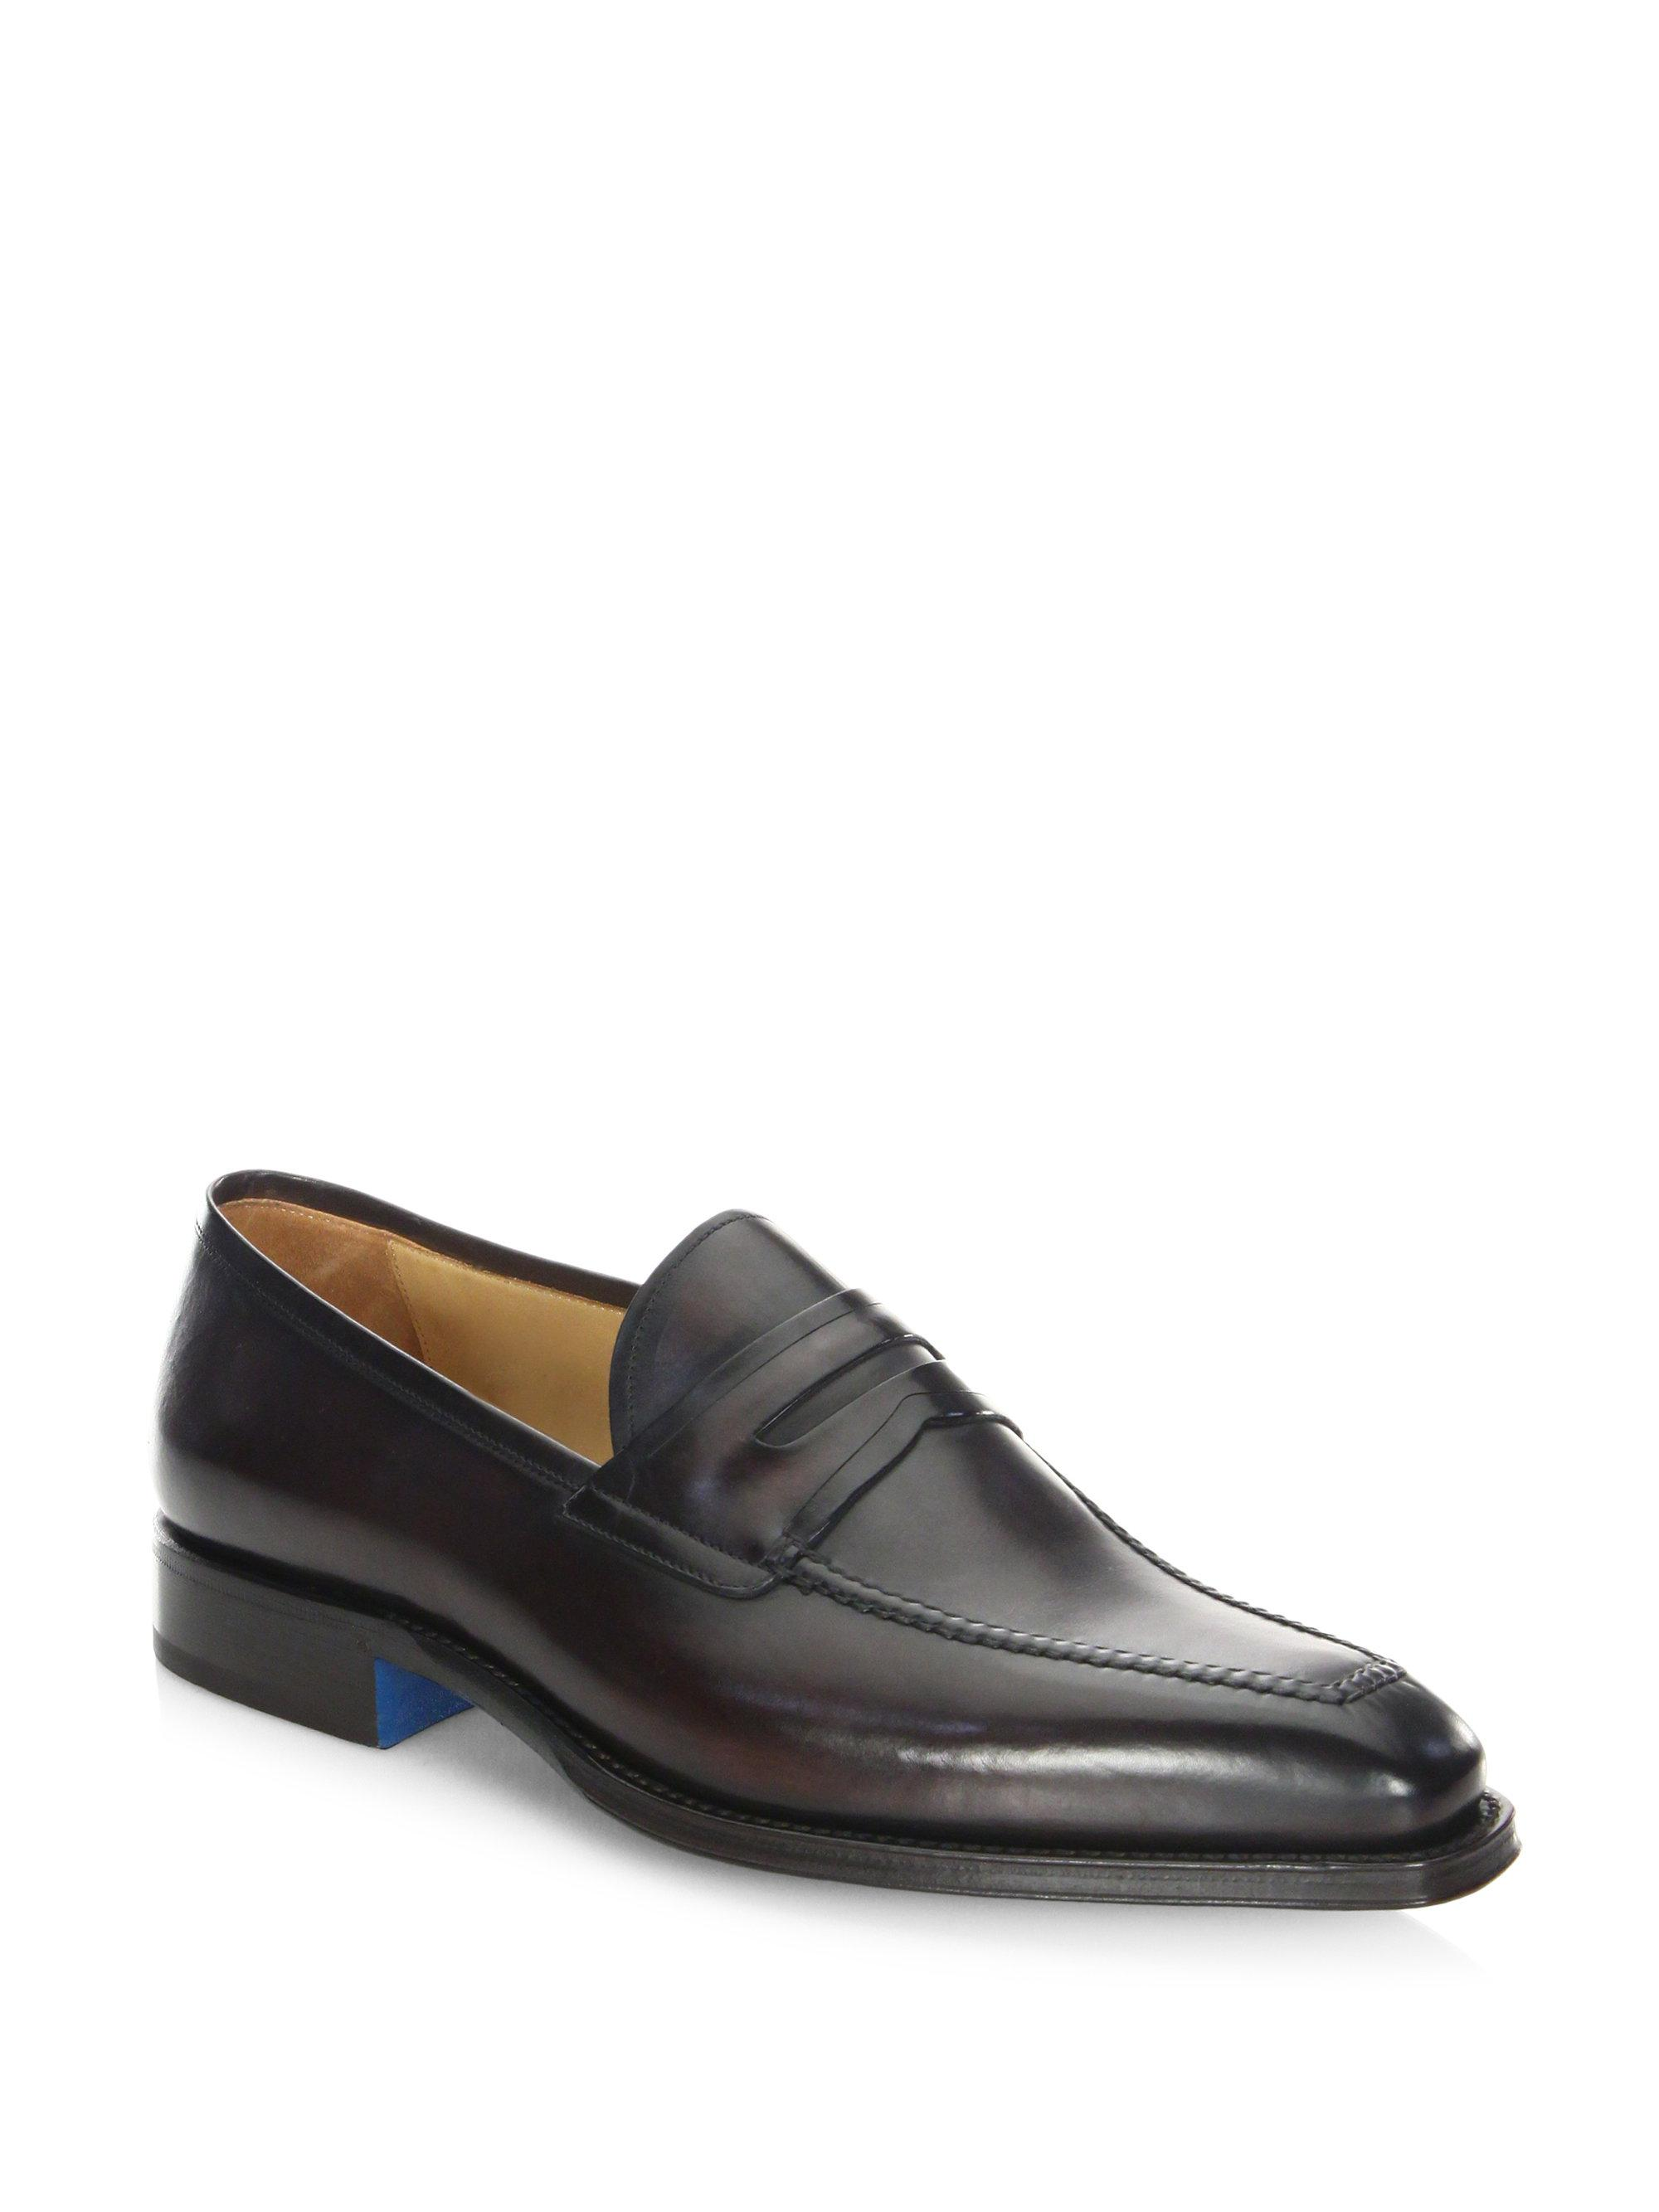 SUTOR MANTELLASSI Olimpo Leather Penny Loafers tqrbEfLY